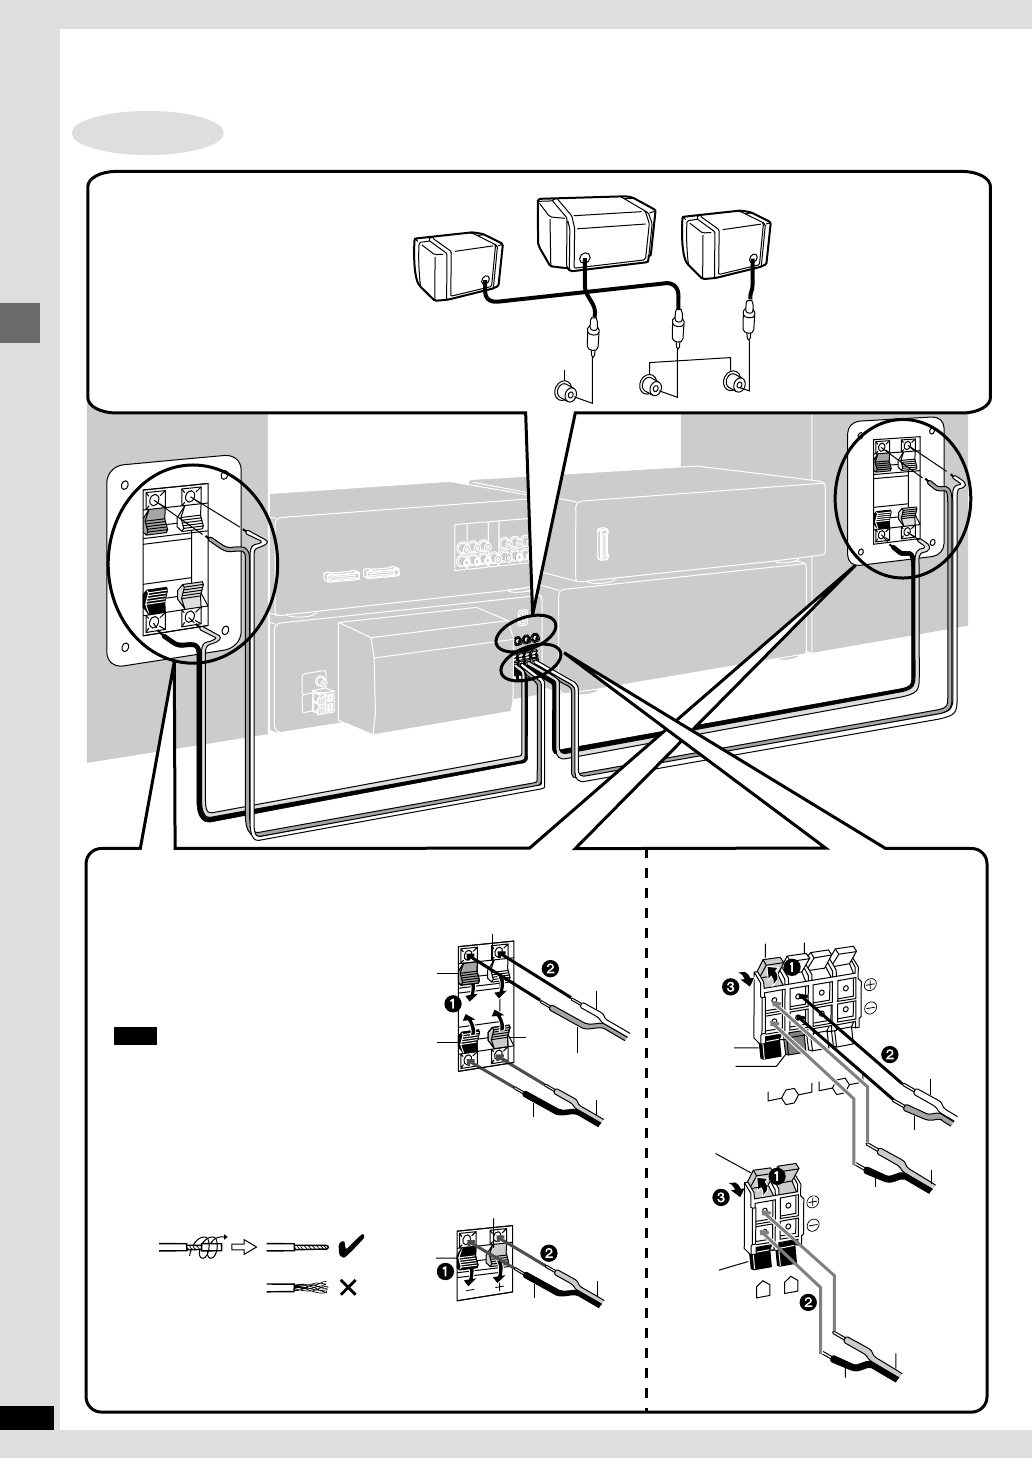 12e946b7 a4c1 4d4c b7bf 762cd65ba4cd bg6 page 6 of technics stereo system sc eh780 user guide technics stereo wiring diagram at virtualis.co